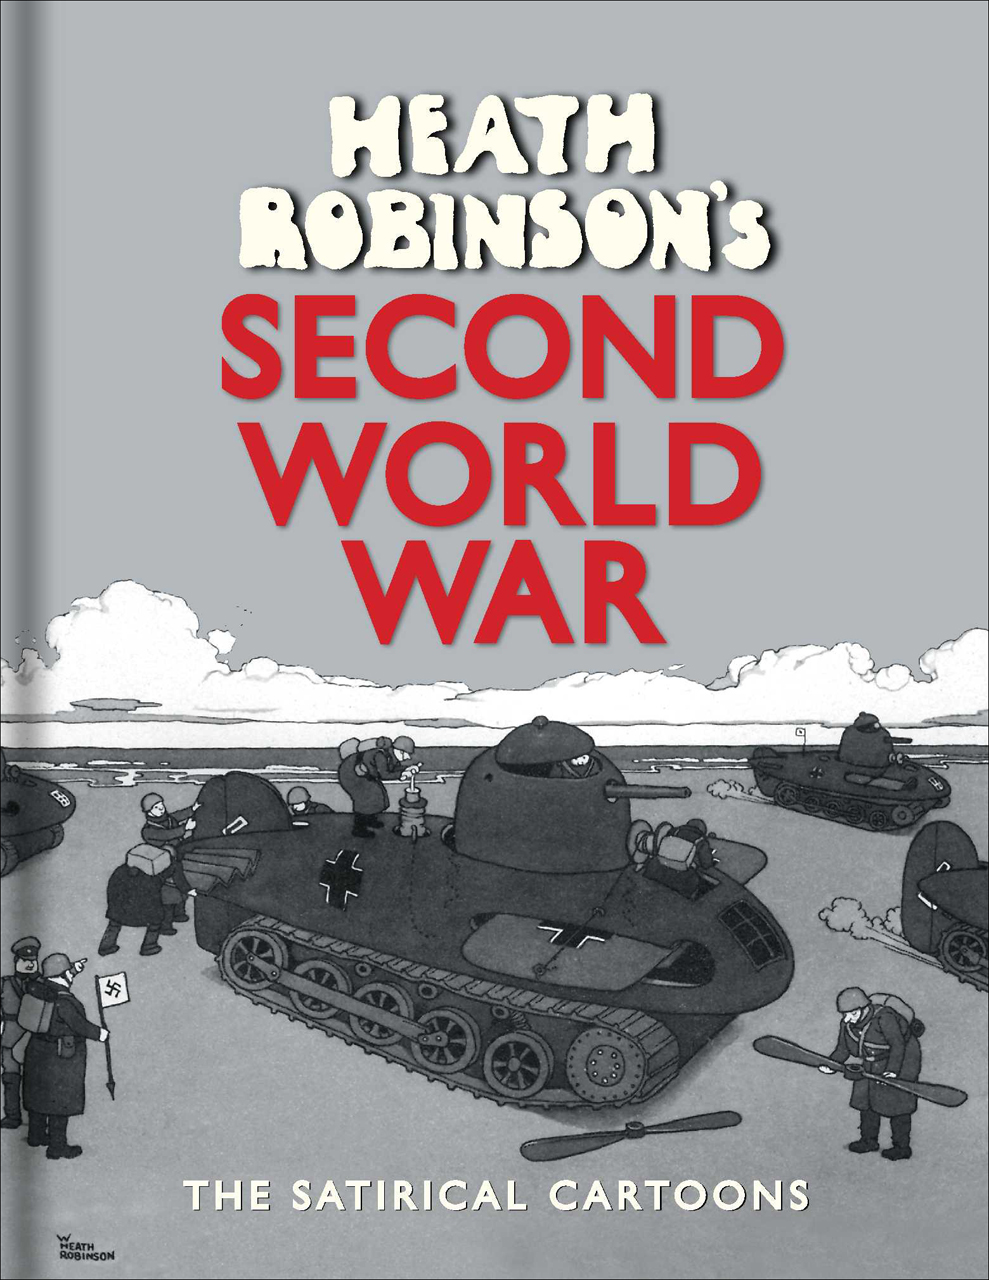 Heath Robinson's Second World War: The Satirical Cartoons